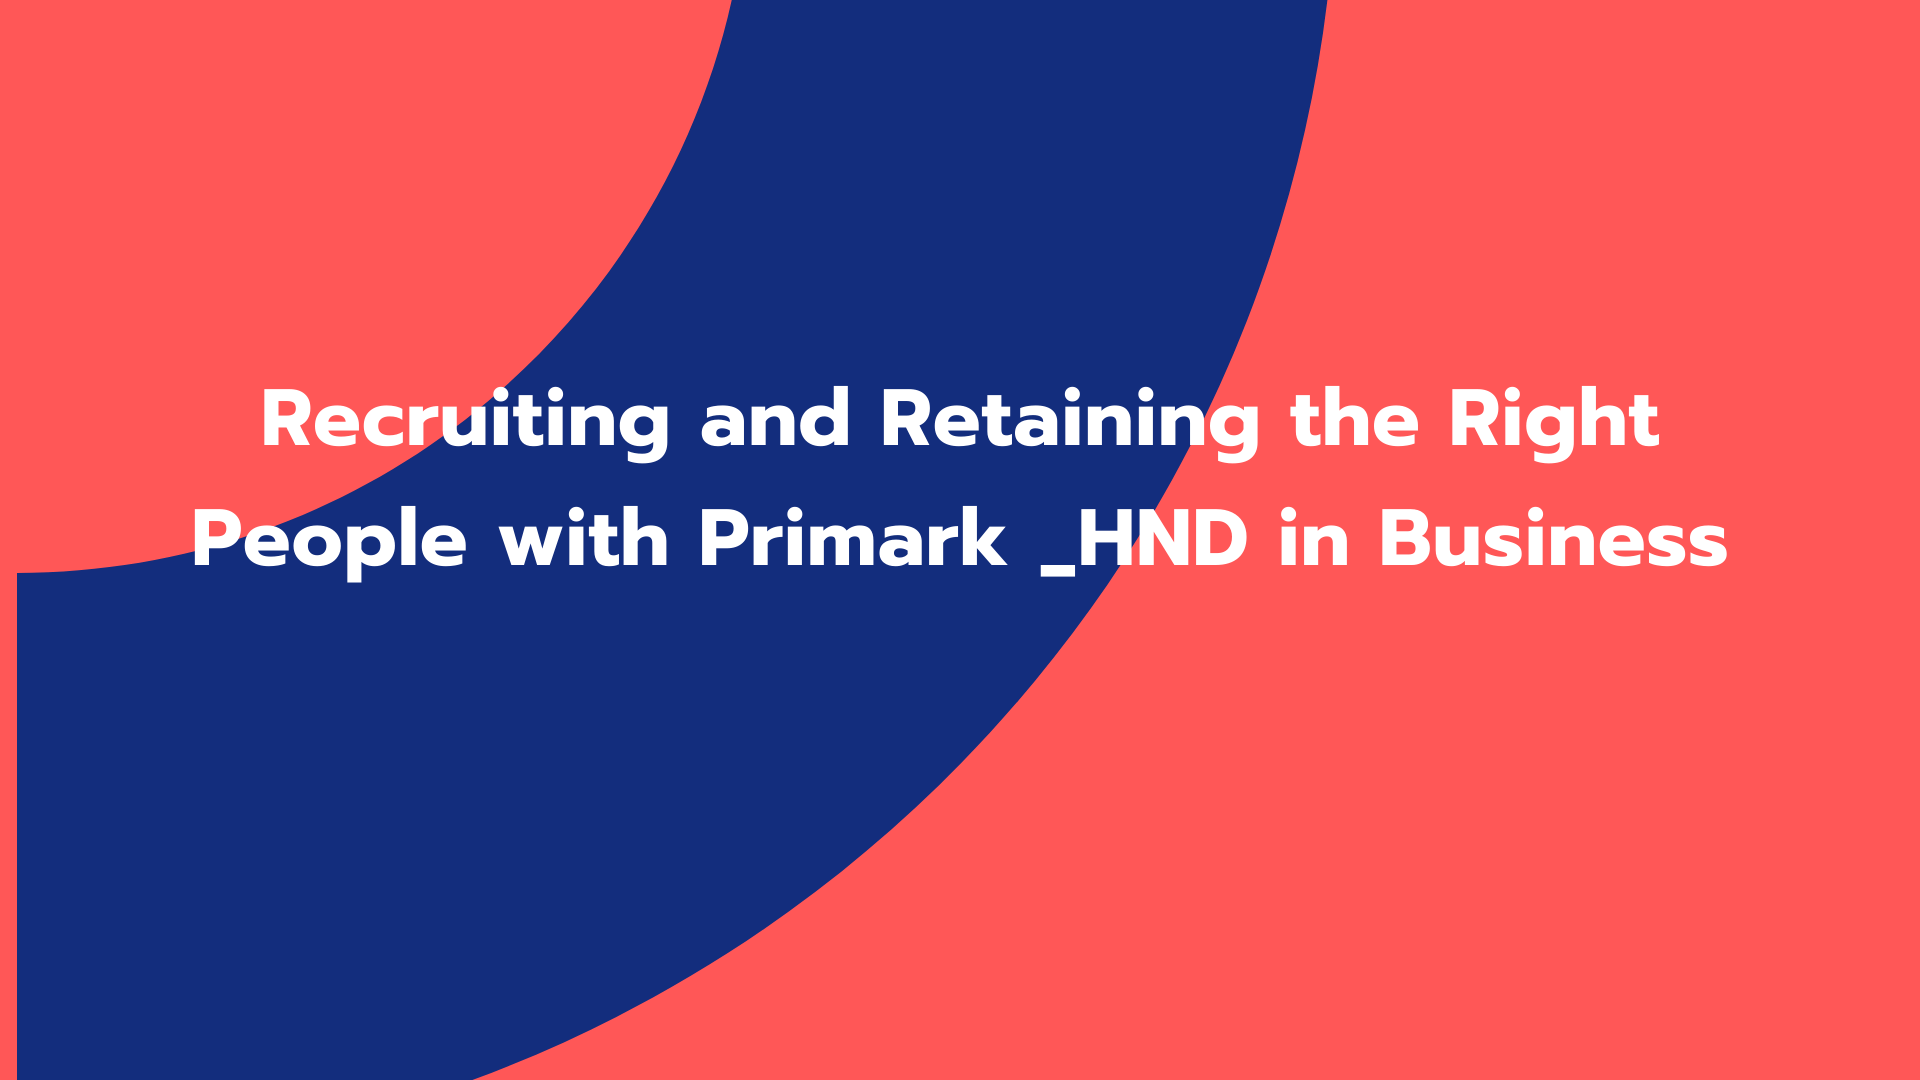 Recruiting and Retaining the Right People with Primark _HND in Business